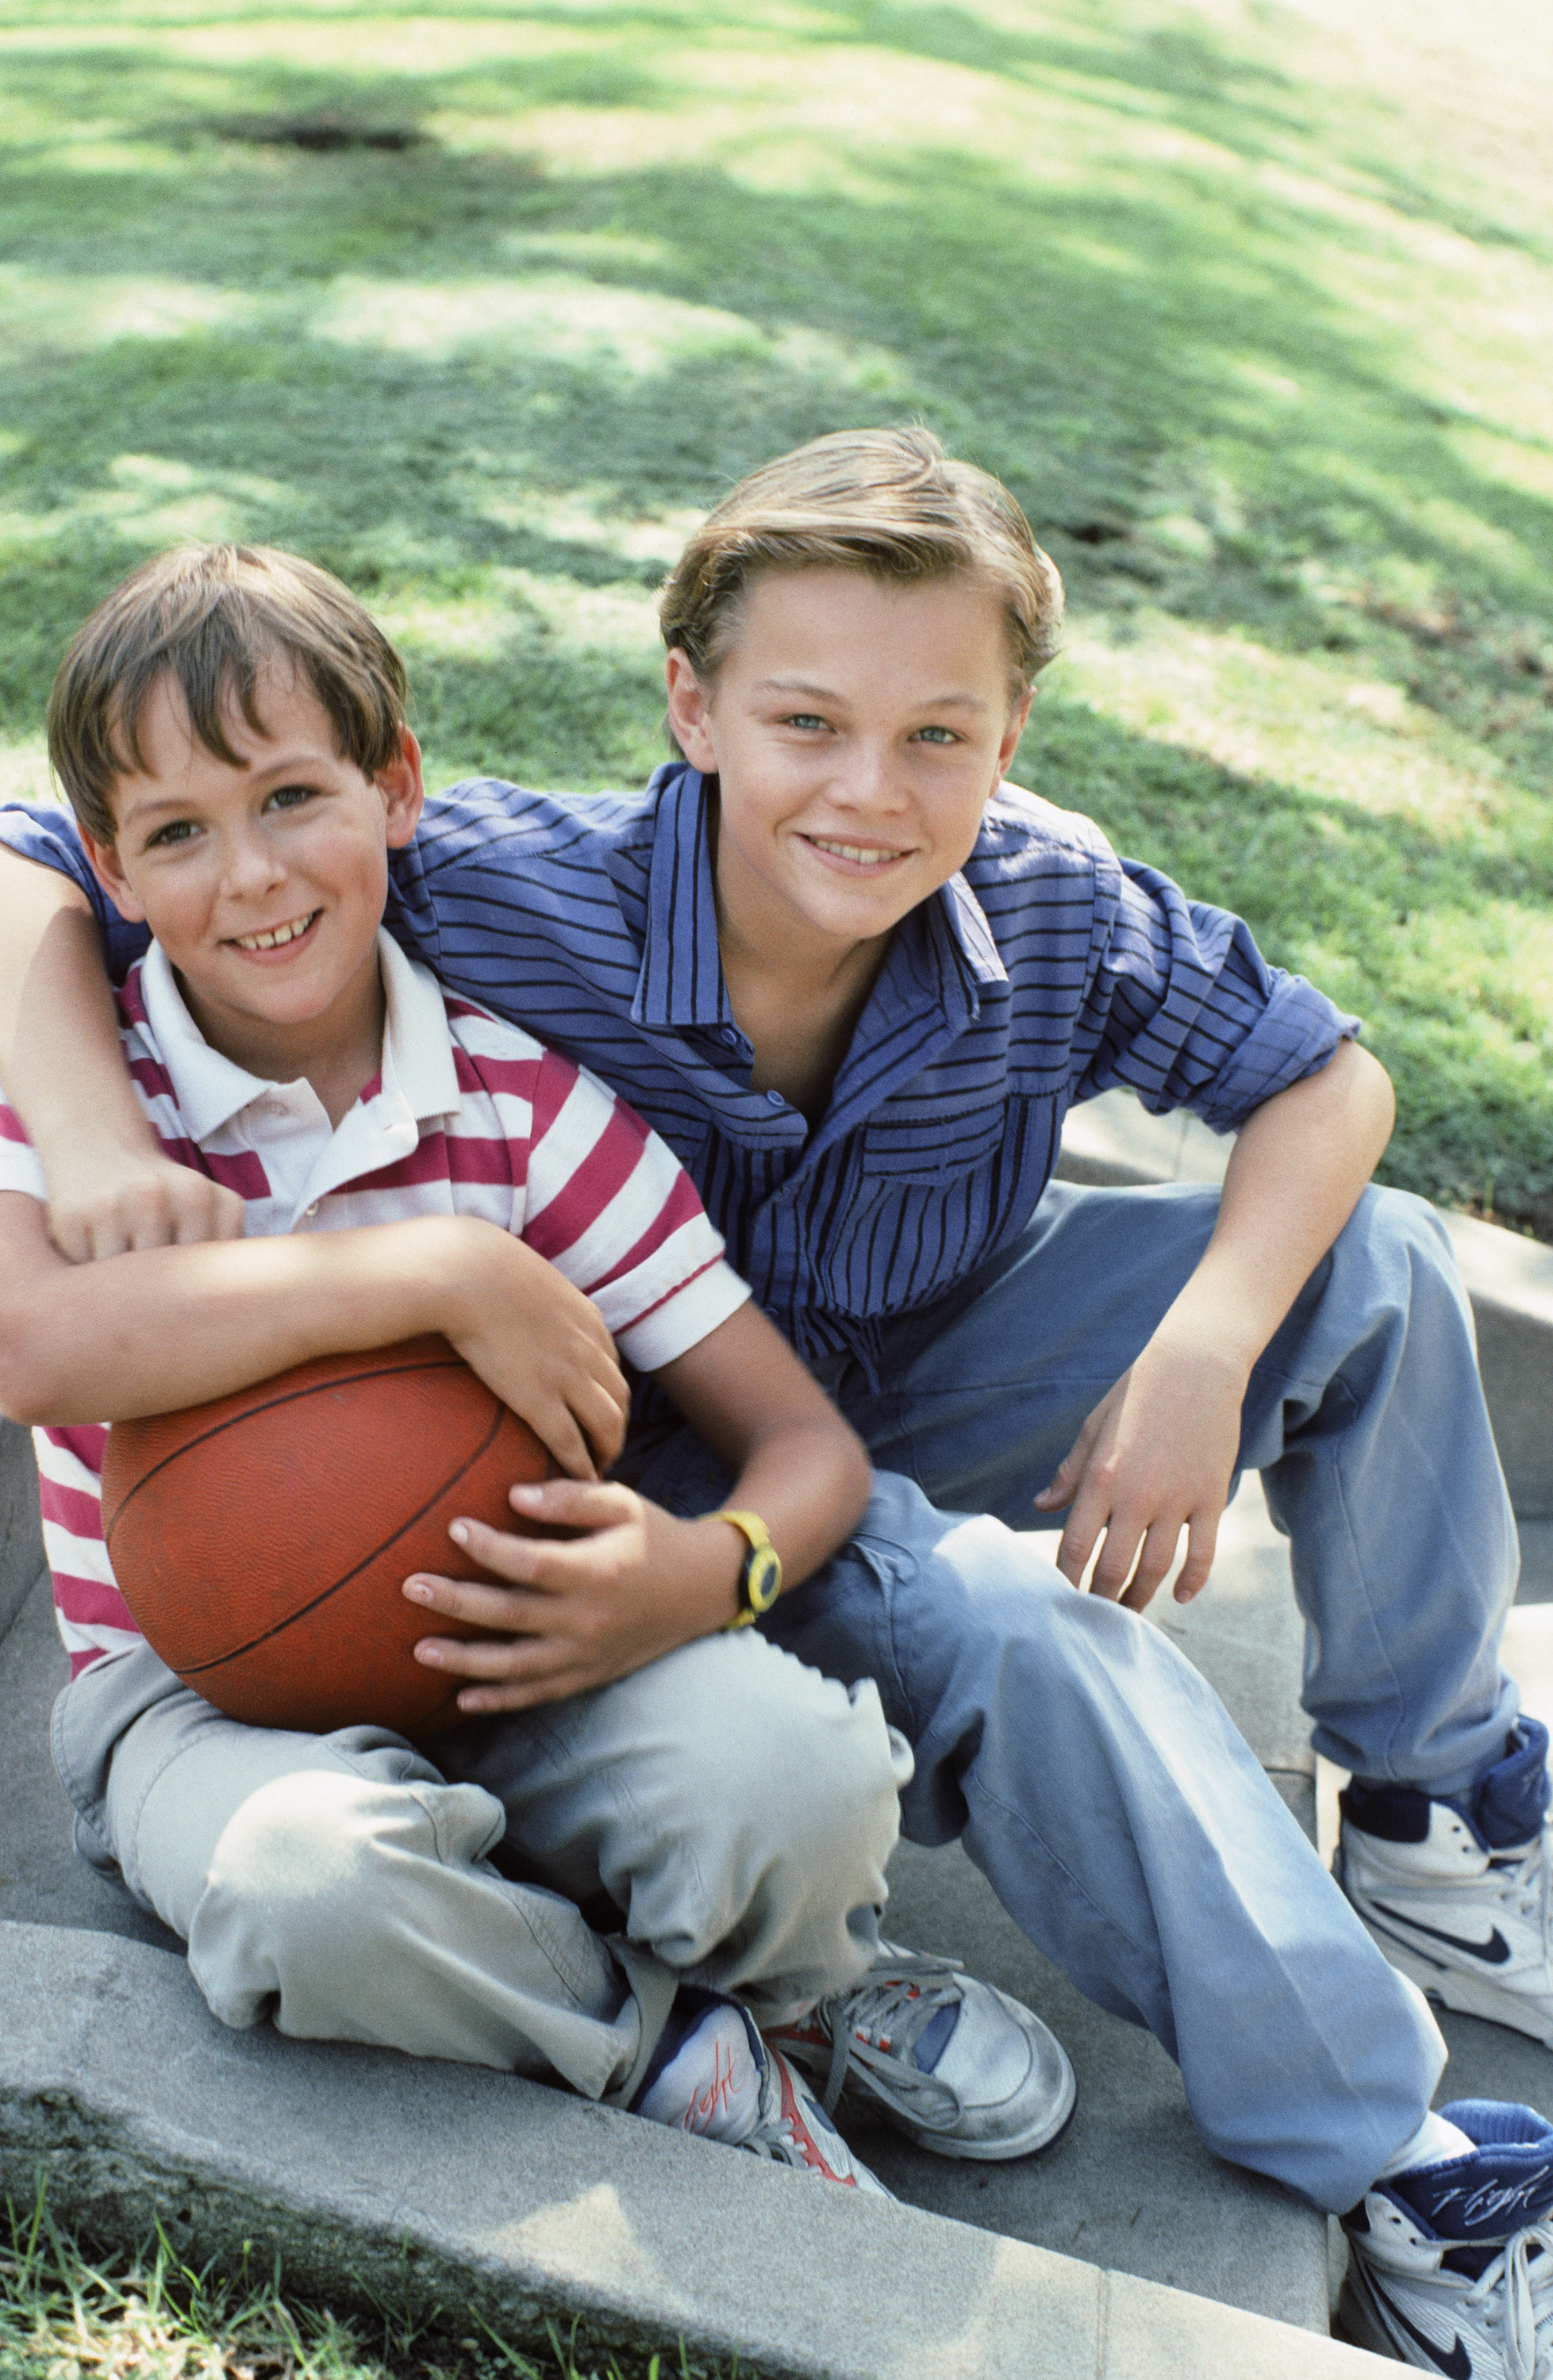 From left: Max Elliott Slade, as Kevin Buckman, and Leonardo DiCaprio, as Garry Buckman, in a promotional still for <i>Parenthood</i>, c. 1990.